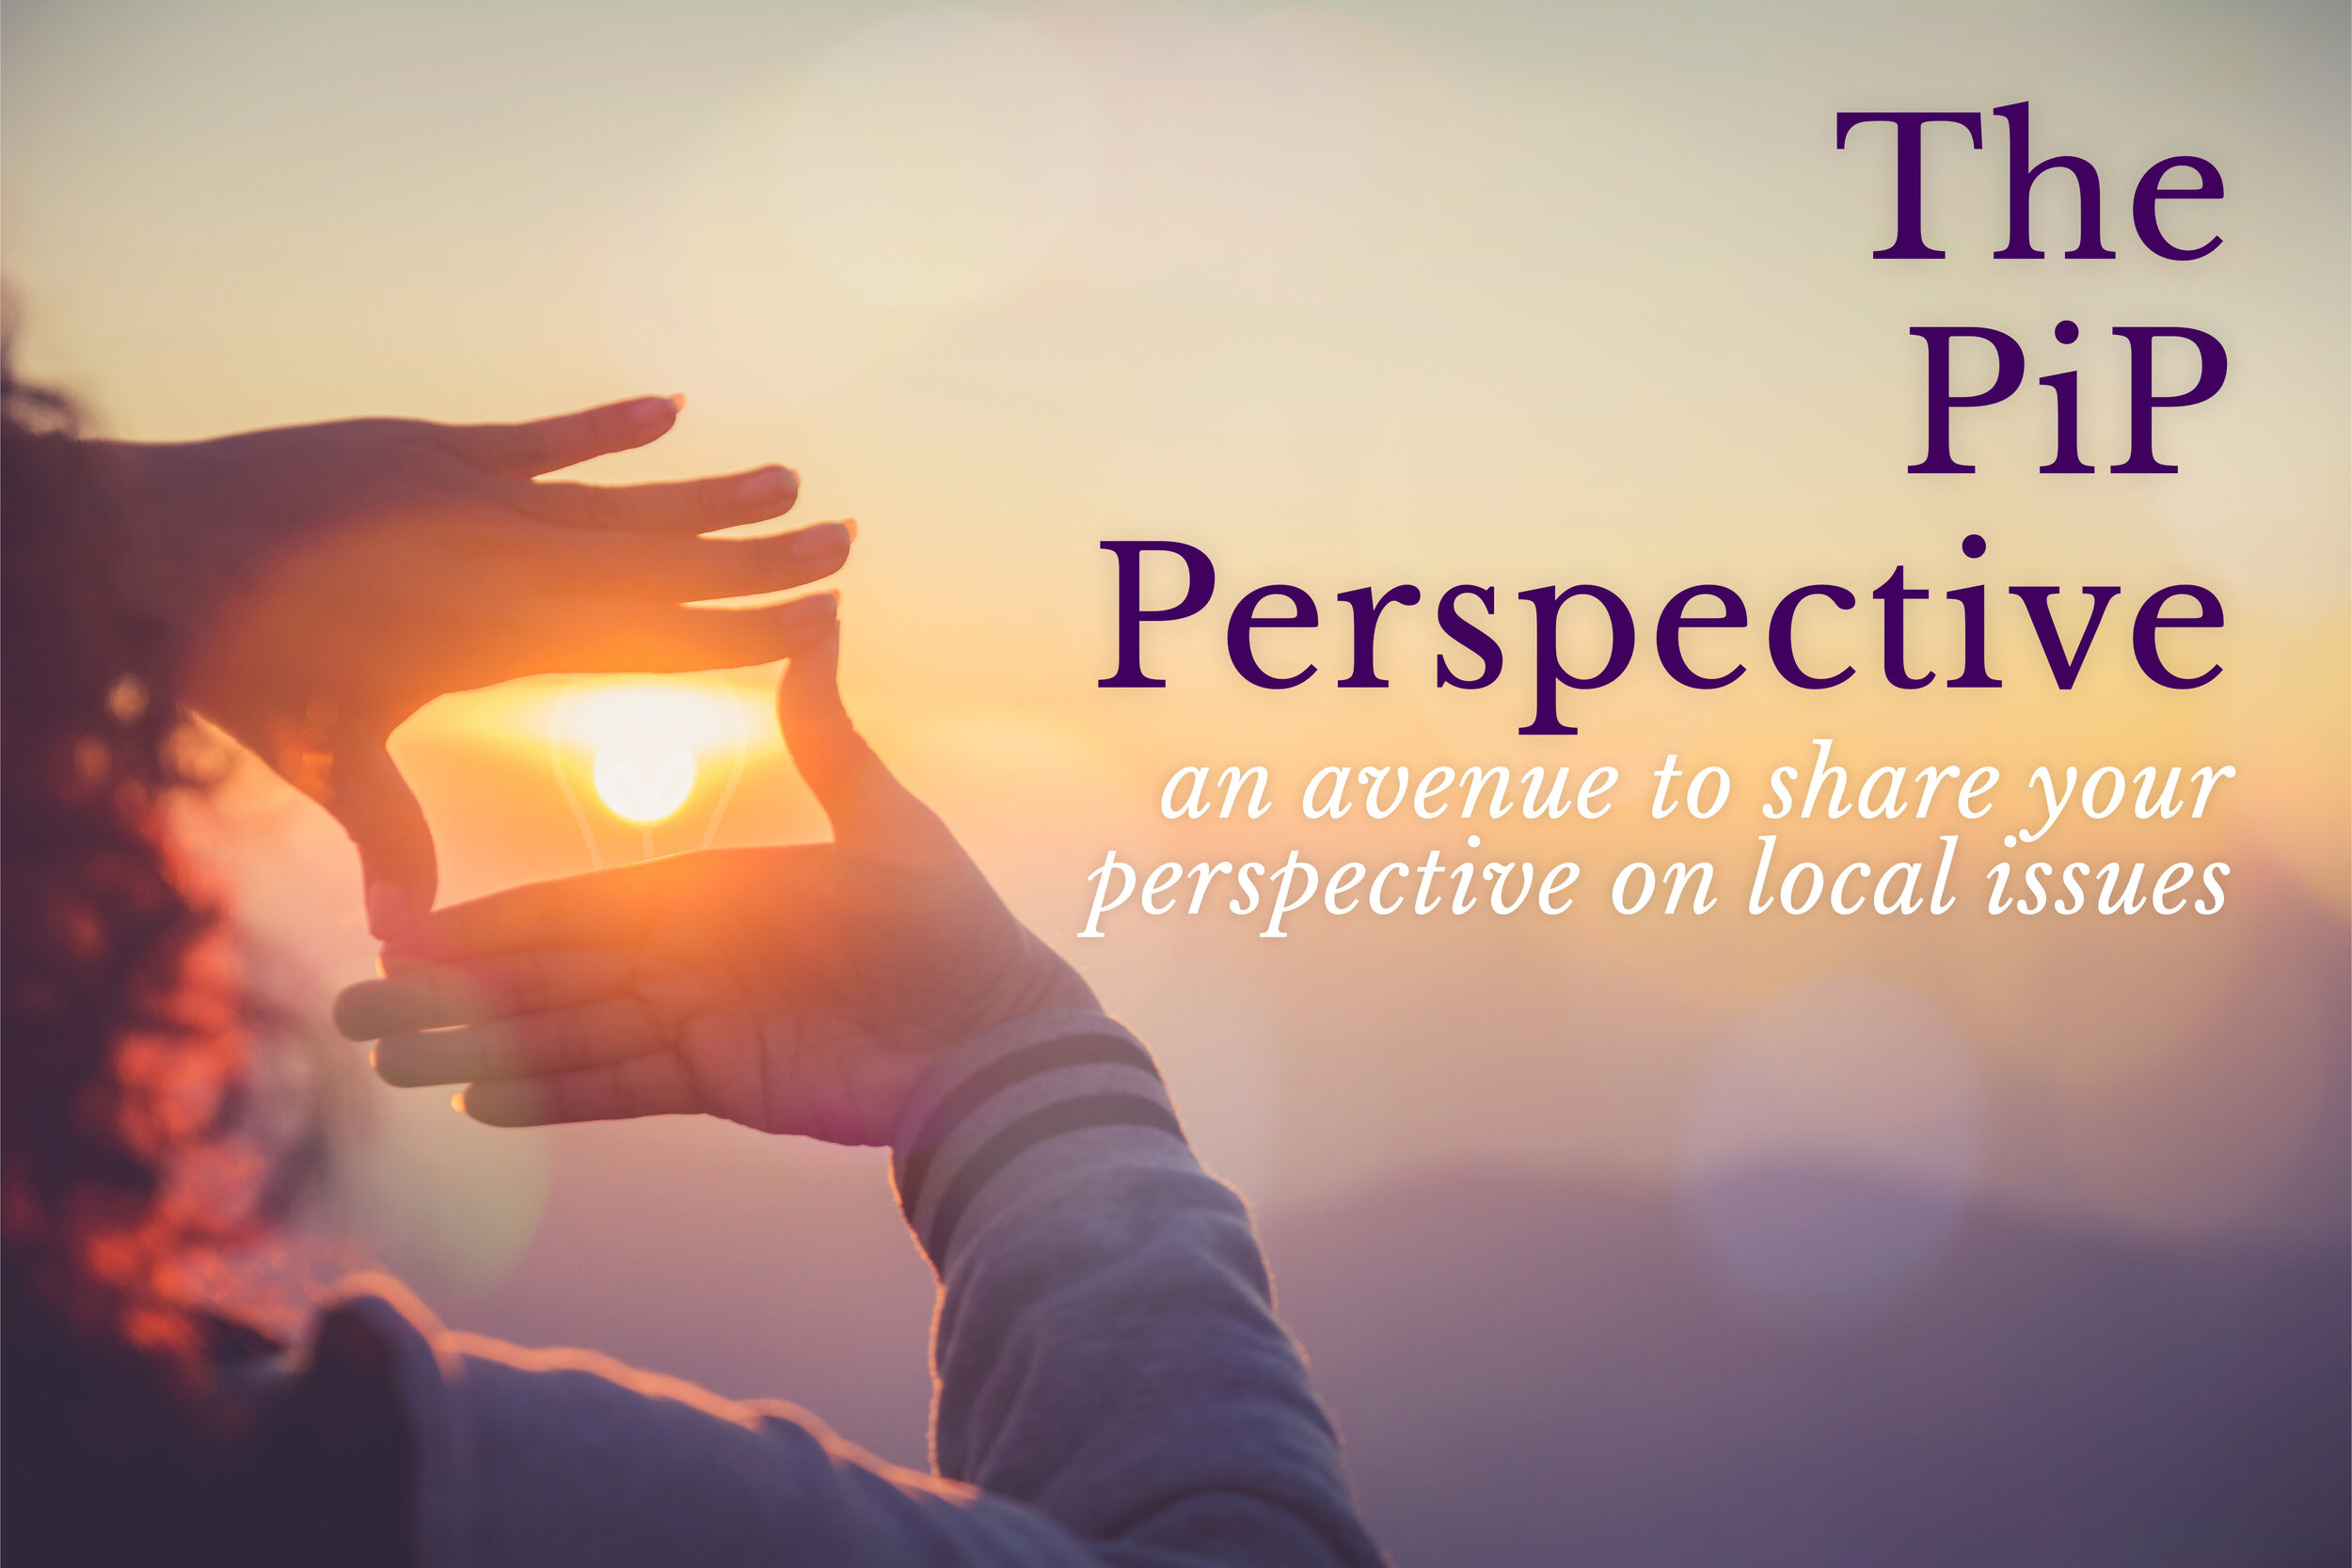 In keeping with the mission of The PiP we have created The PiP Perspective as an avenue for you to share your thoughts and opinions on local issues.  The PiP reserves the right to publish these perspectives at our discretion.  Please limit to 500 words or less.